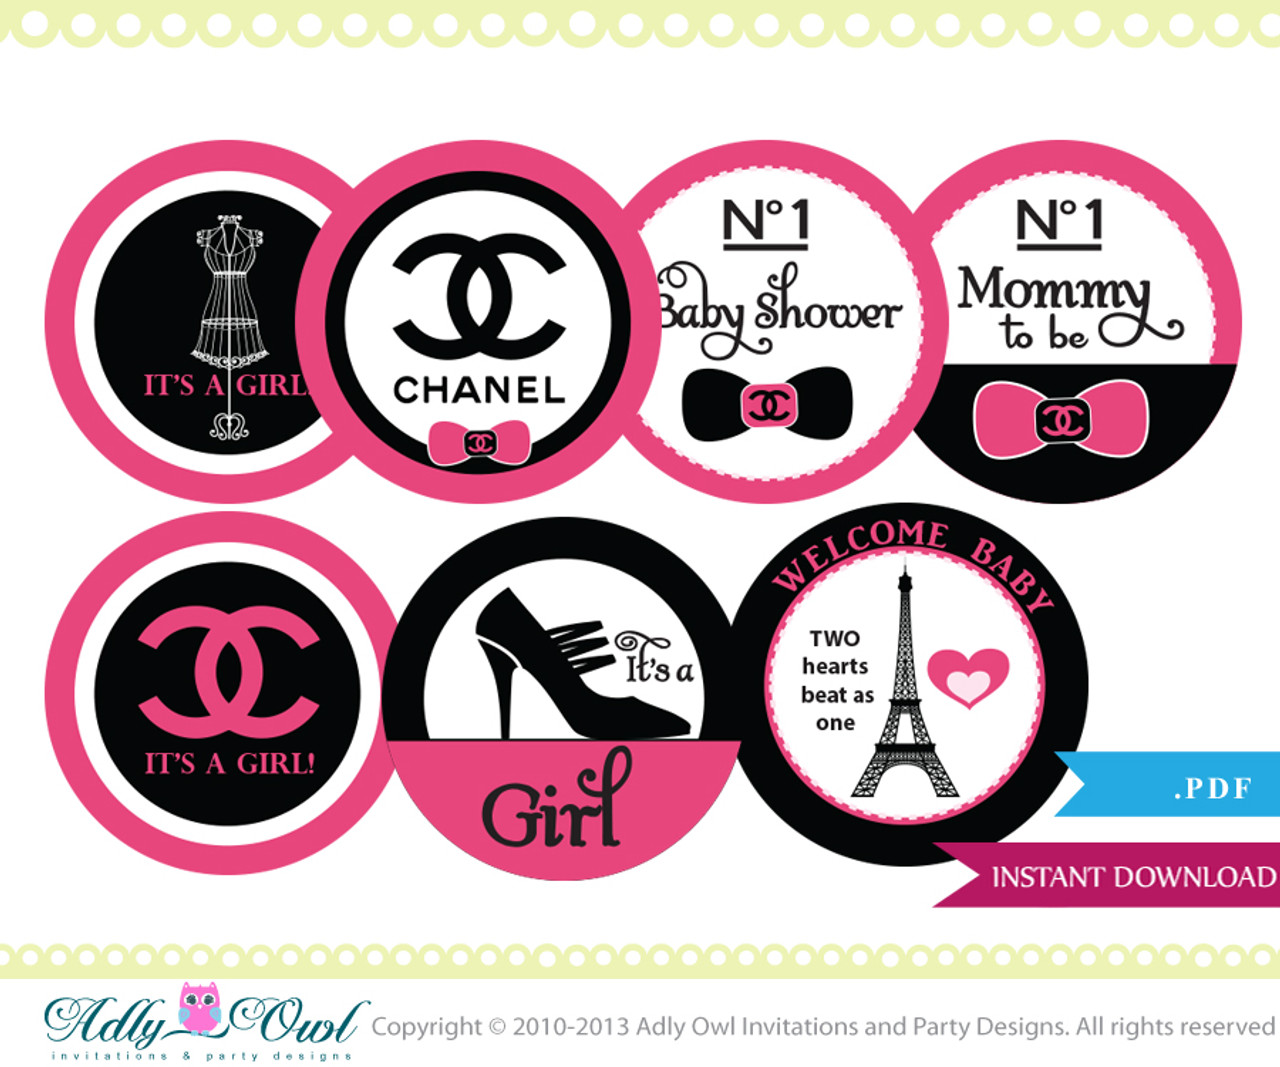 Coco Chanel Cupcake Toppers For A Baby Shower Classy Baby Shower